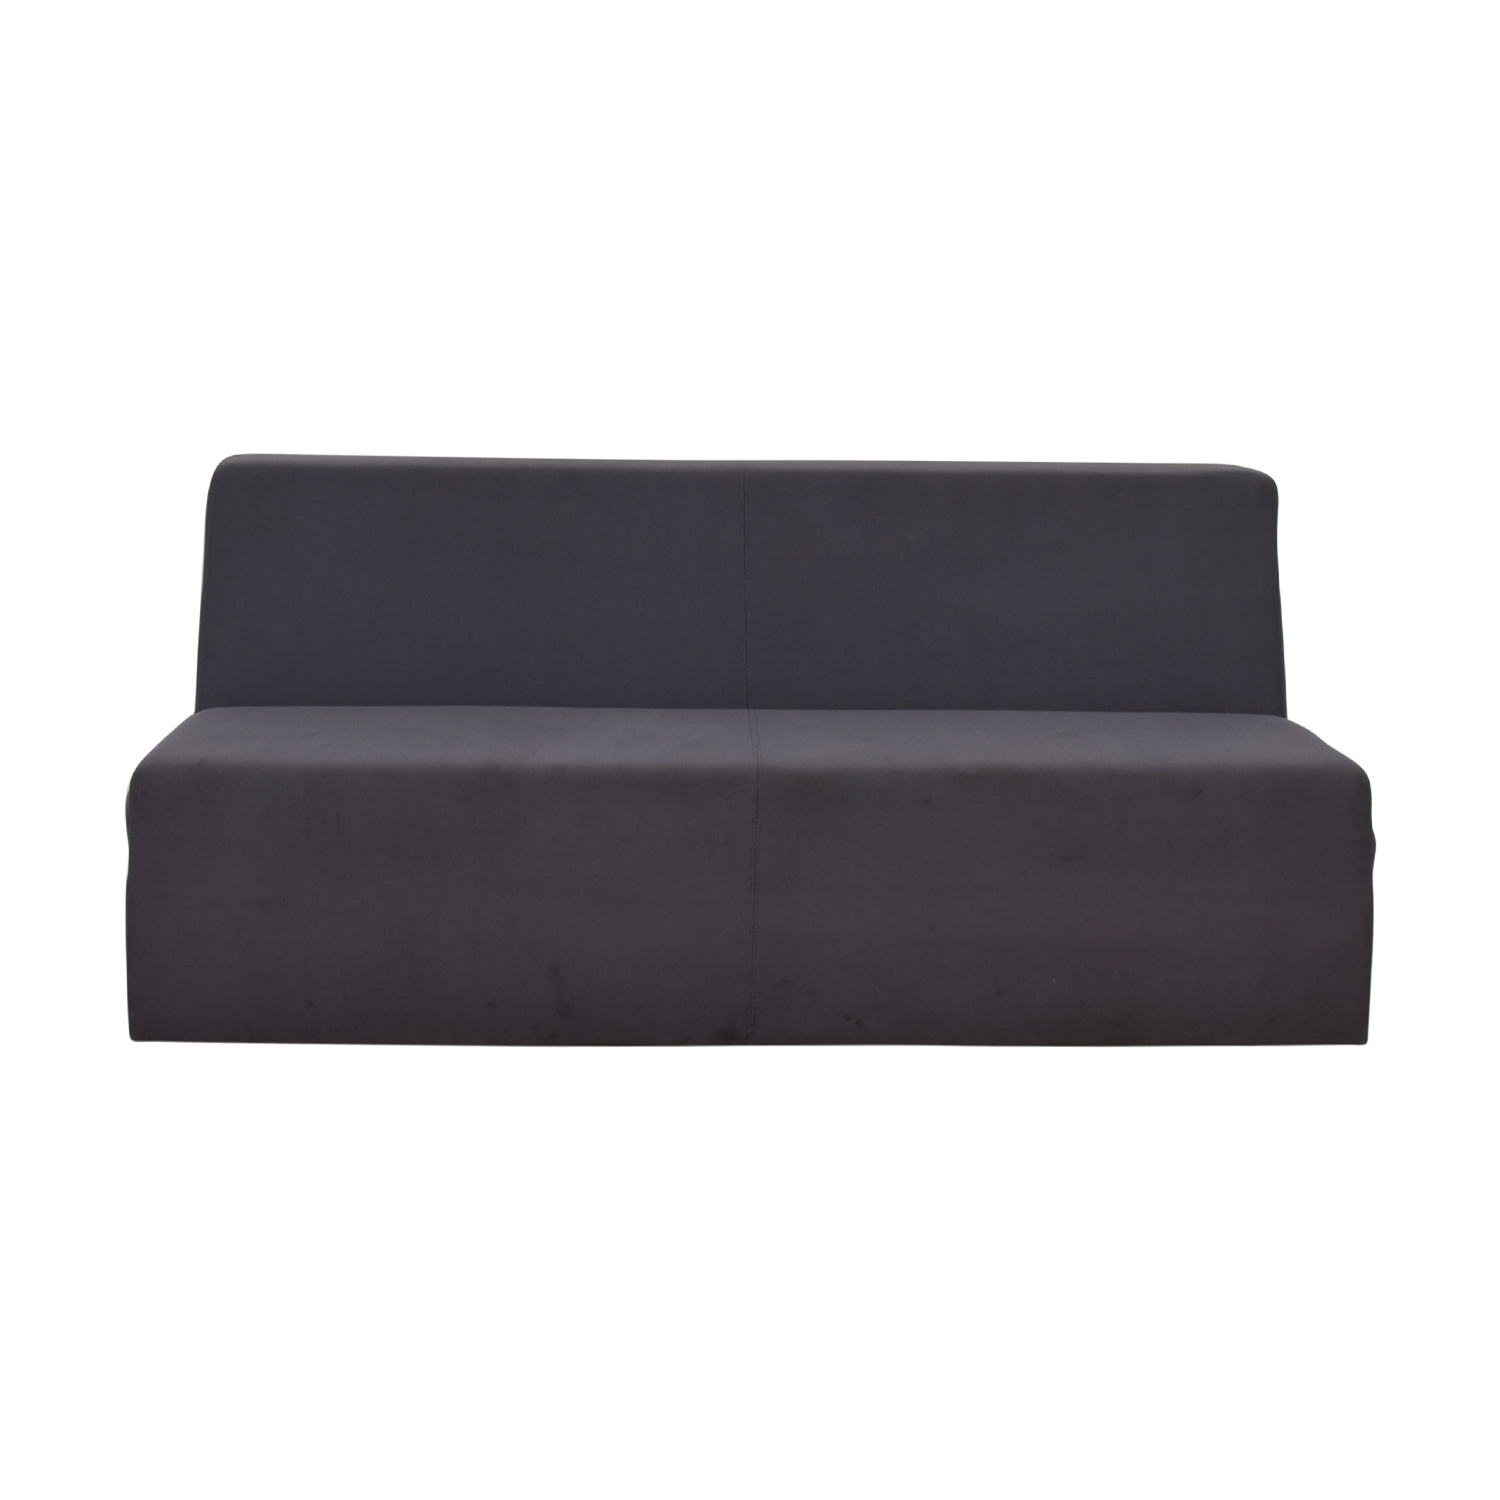 shop Steelcase Turnstone Steelcase Turnstone Grey Campfire Couch online